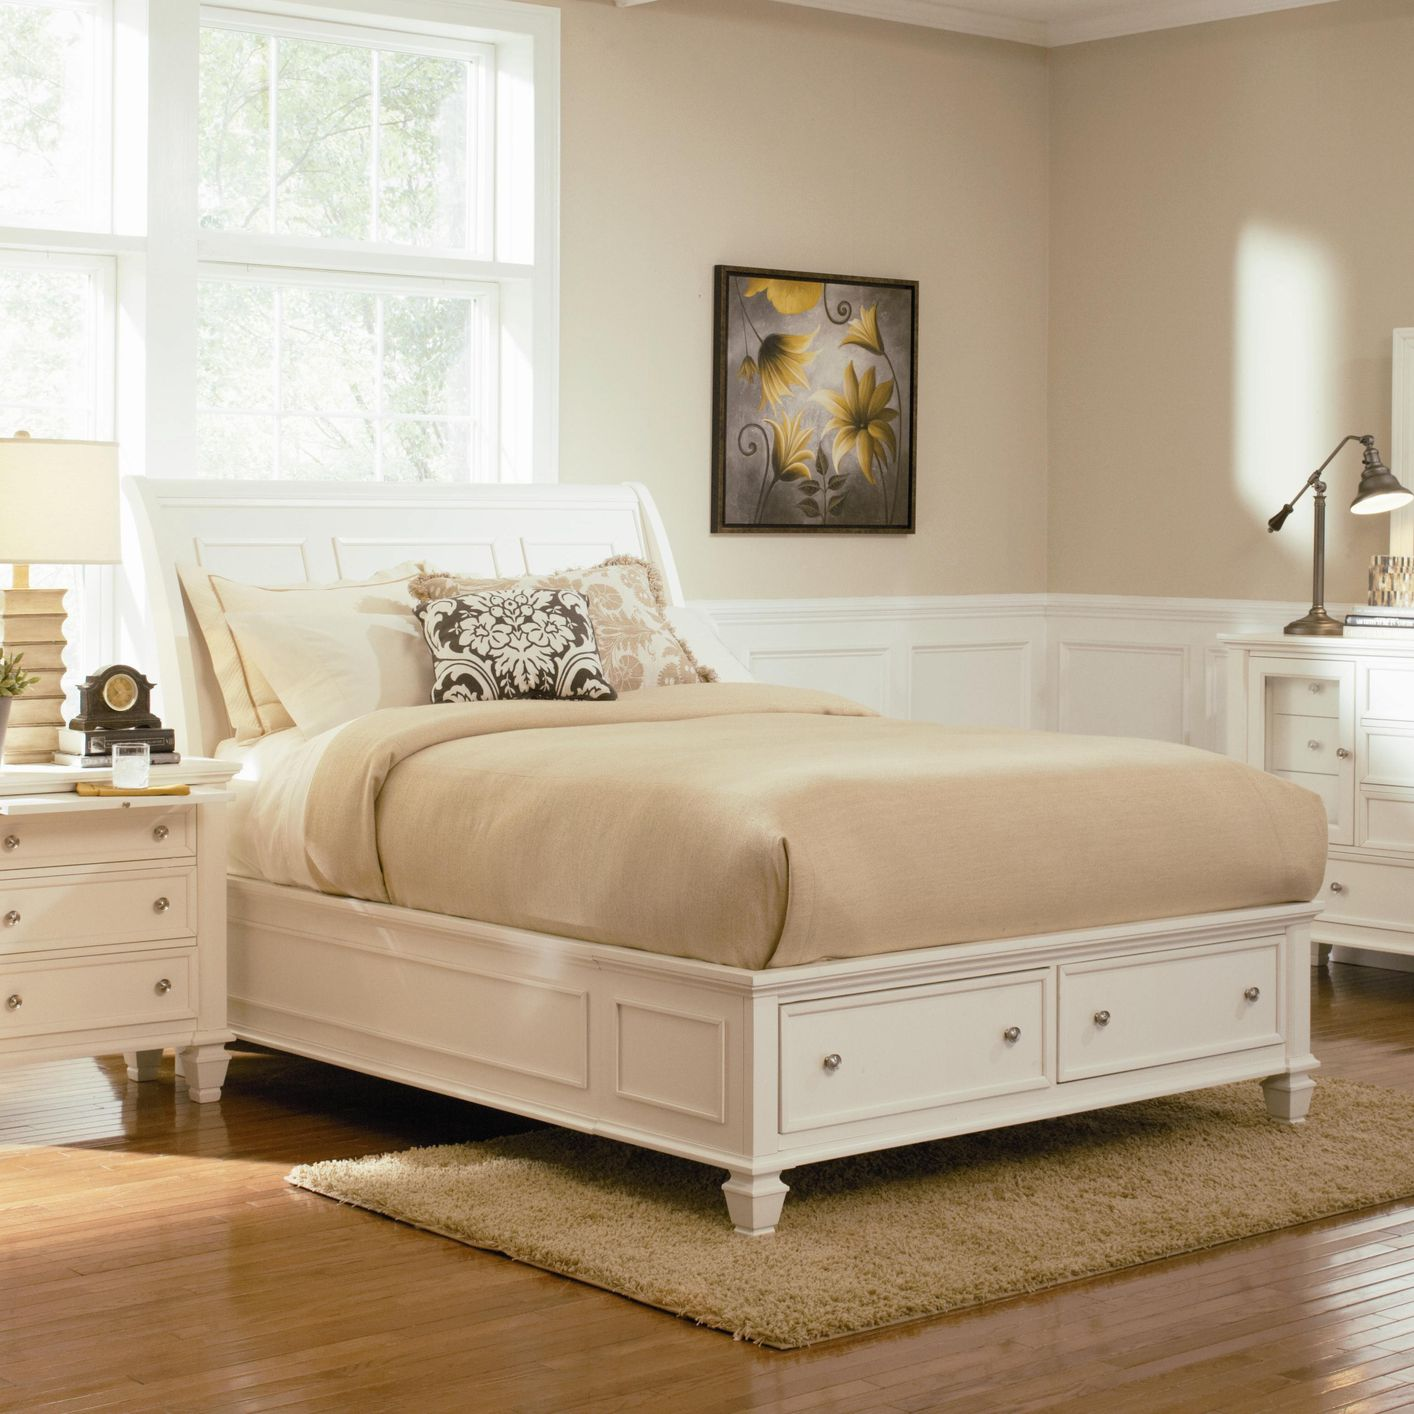 Outlet Bedroom Furniture Coaster 201309q White Wood Queen Size Bed Steal A Sofa Furniture